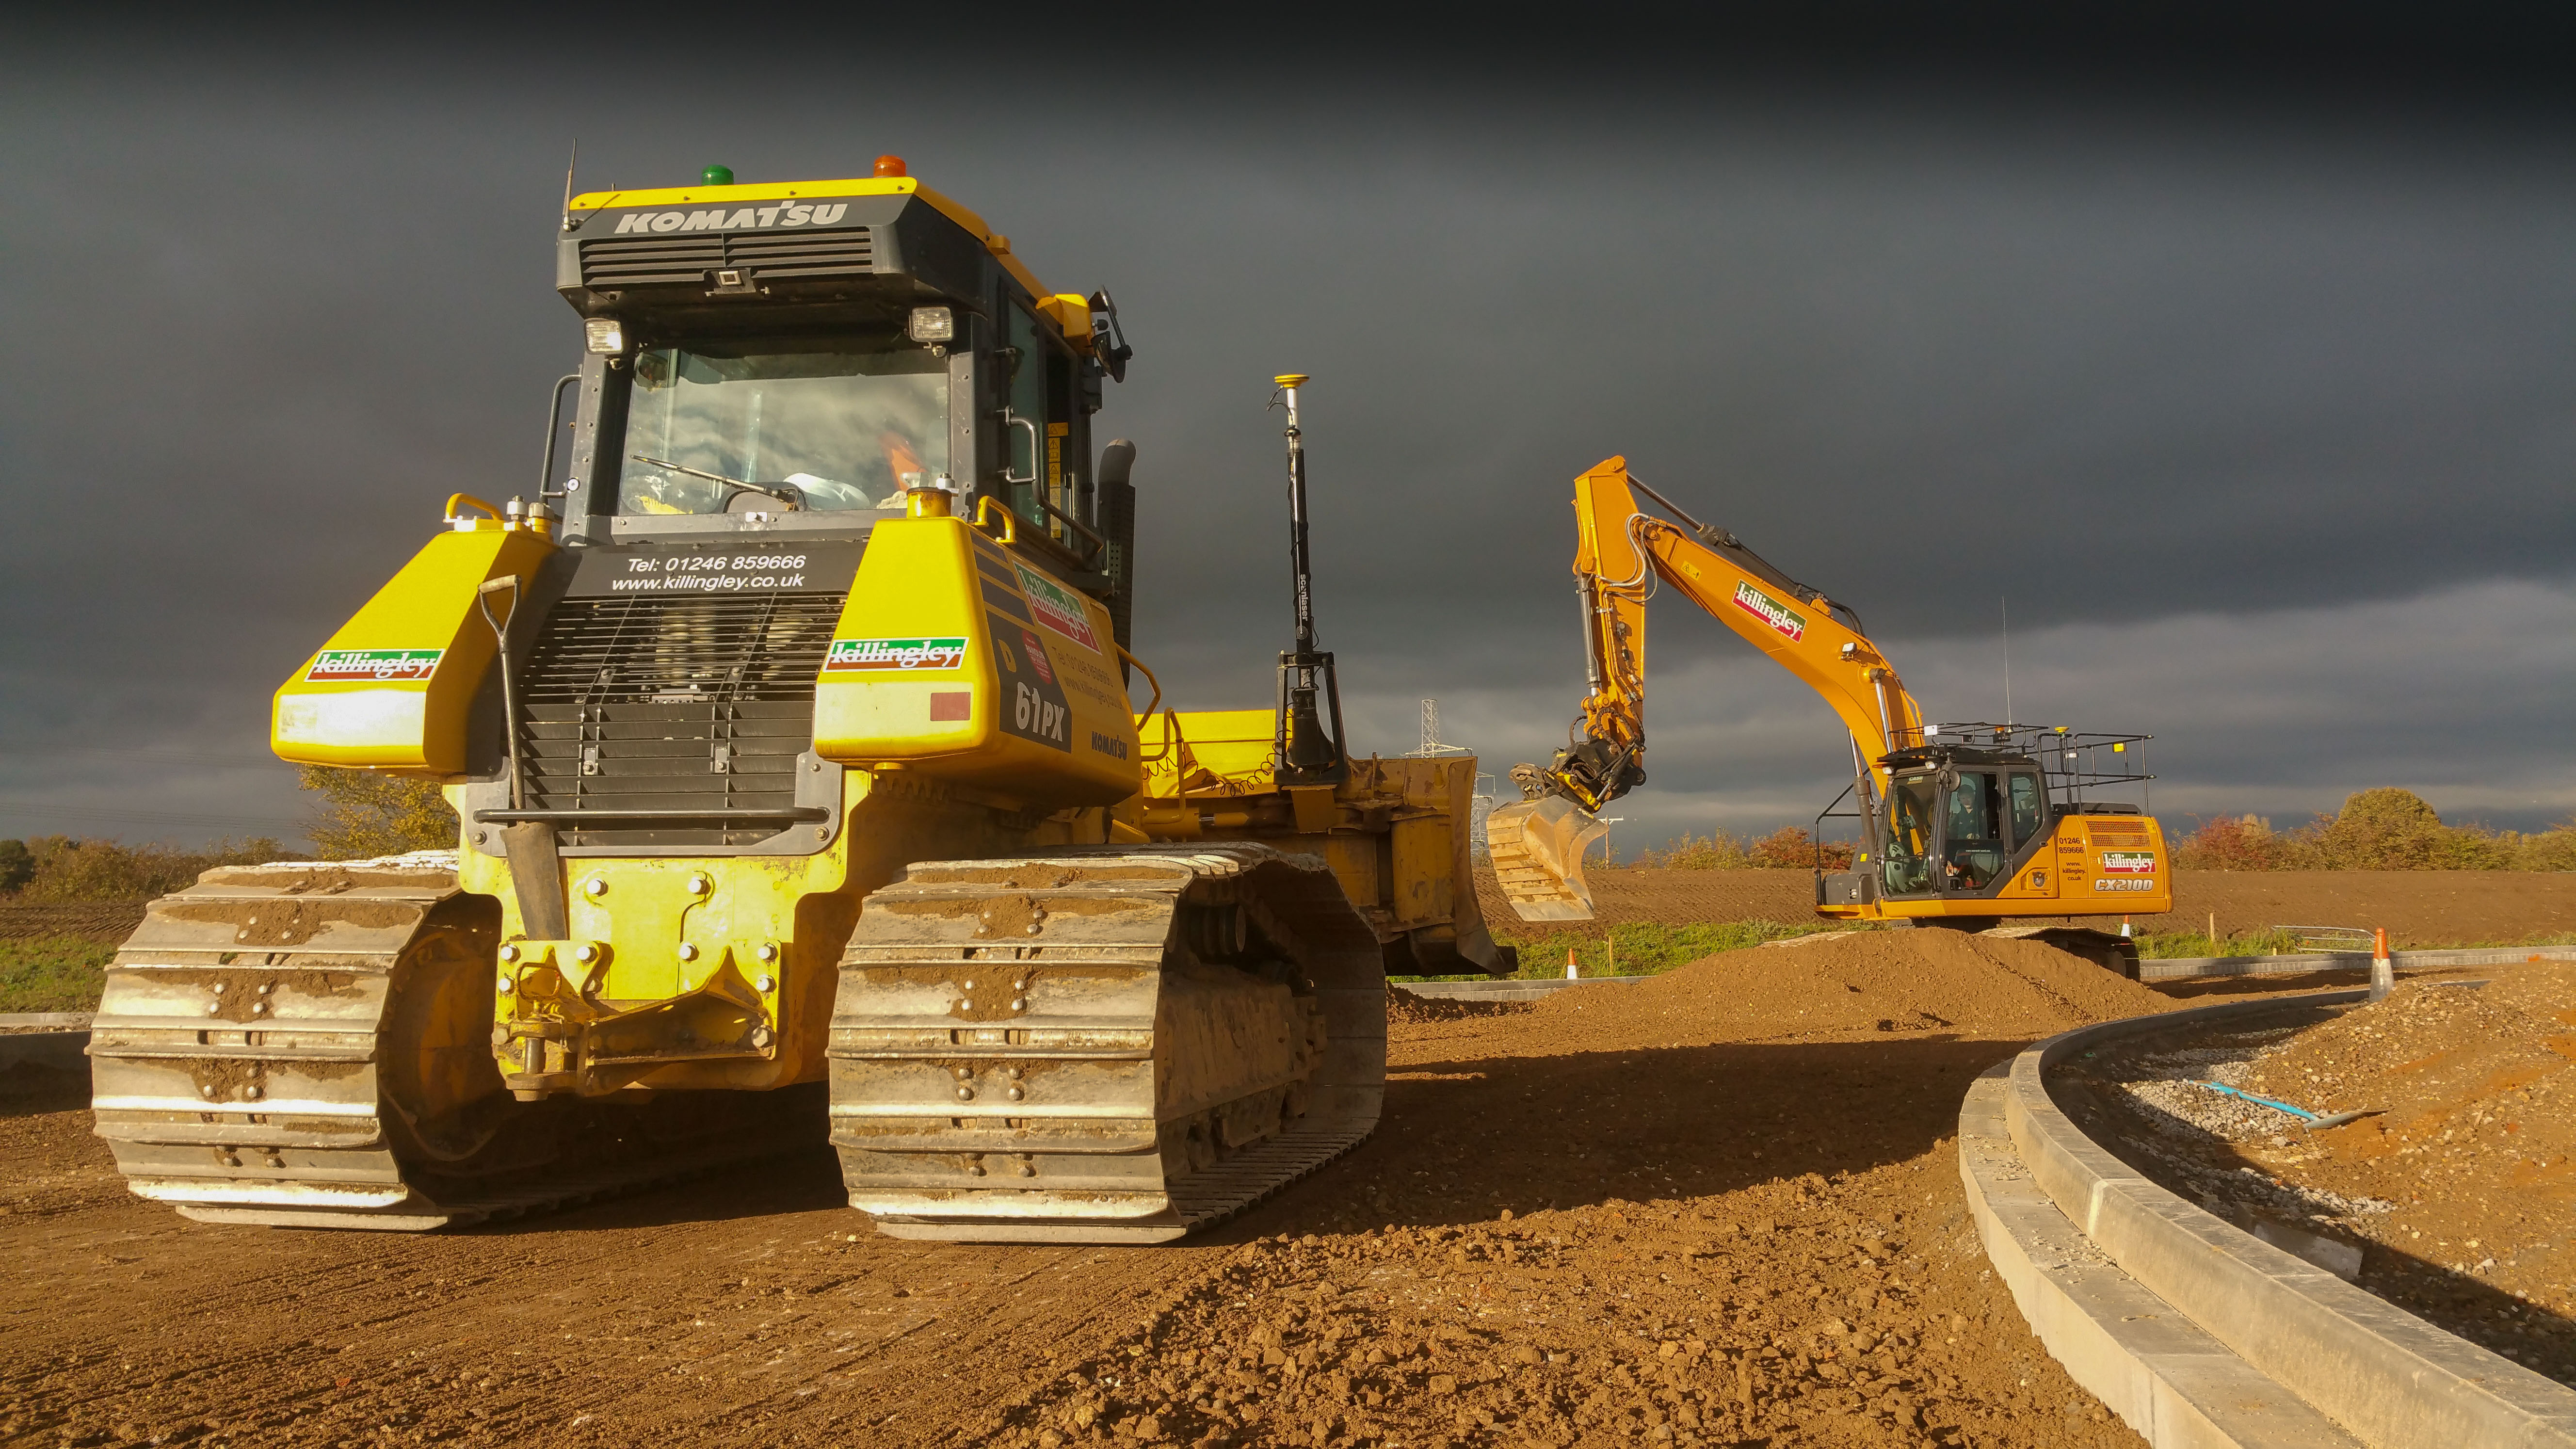 Excavator operated by Killingley